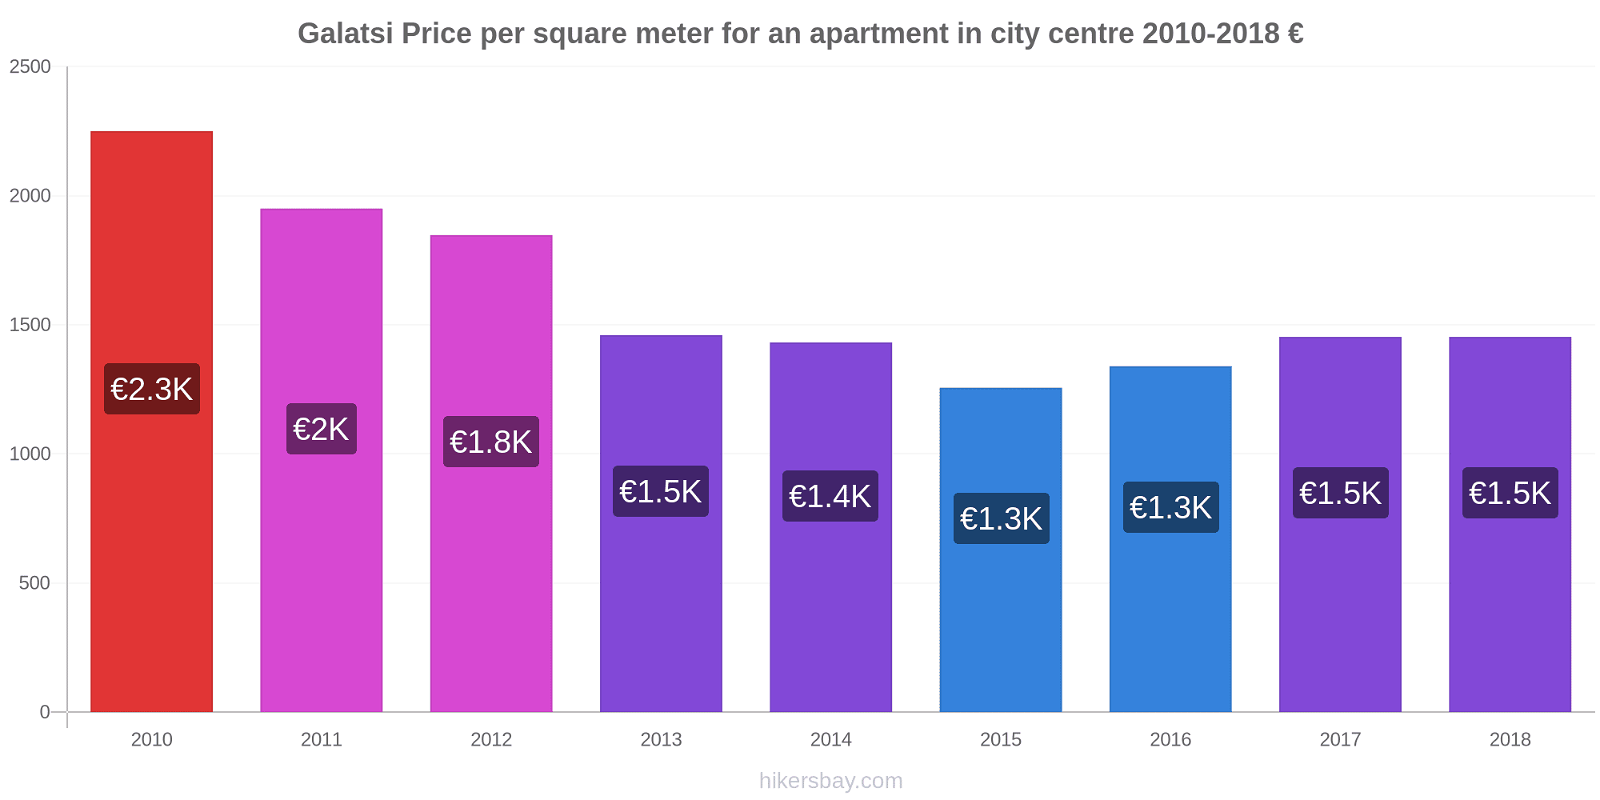 Galatsi price changes Price per square meter for an apartment in city centre hikersbay.com